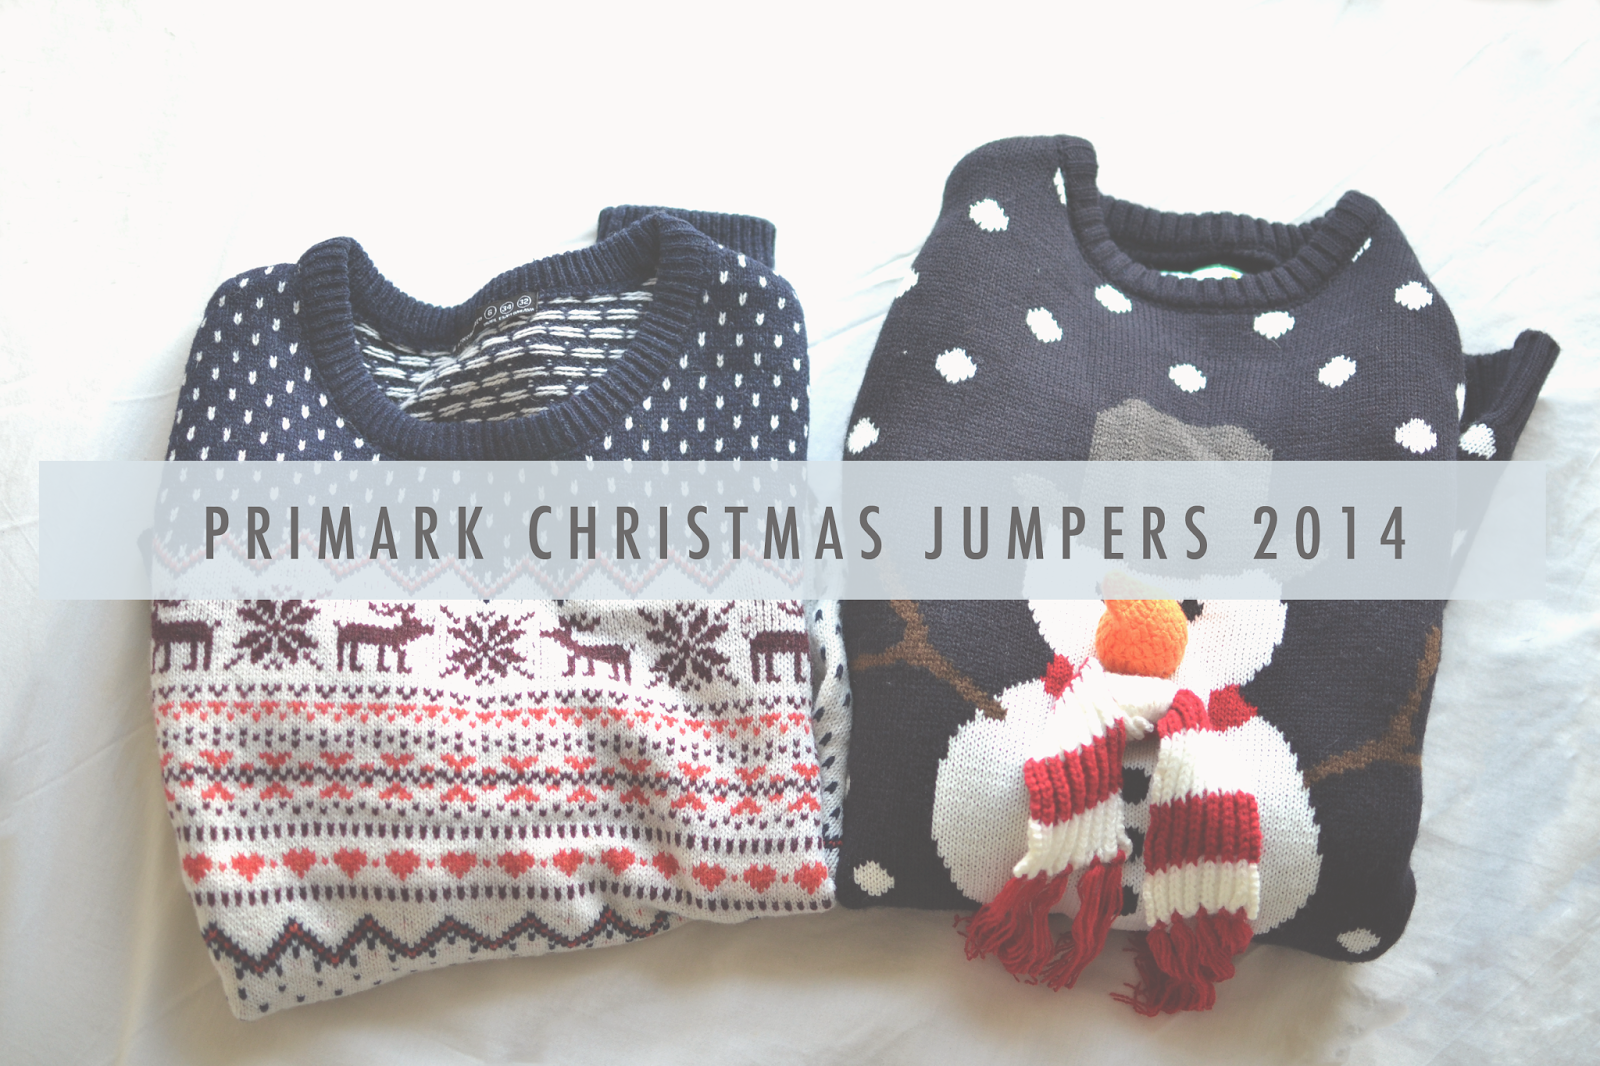 primark christmas jumpers, christmas jumpers from primark 2014